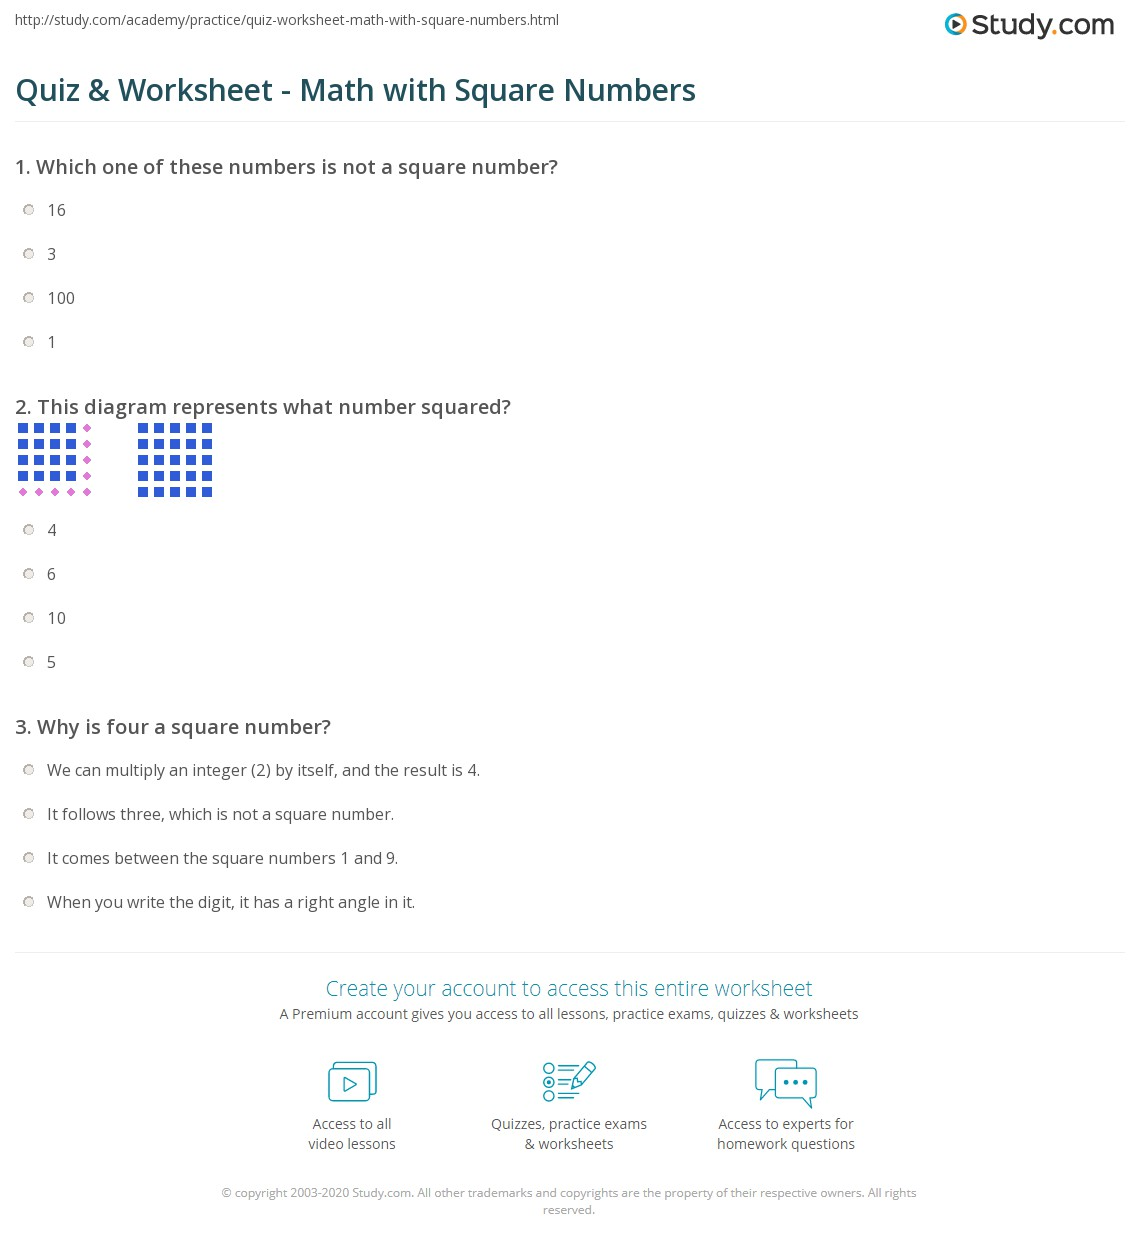 Quiz & Worksheet - Math with Square Numbers | Study.com